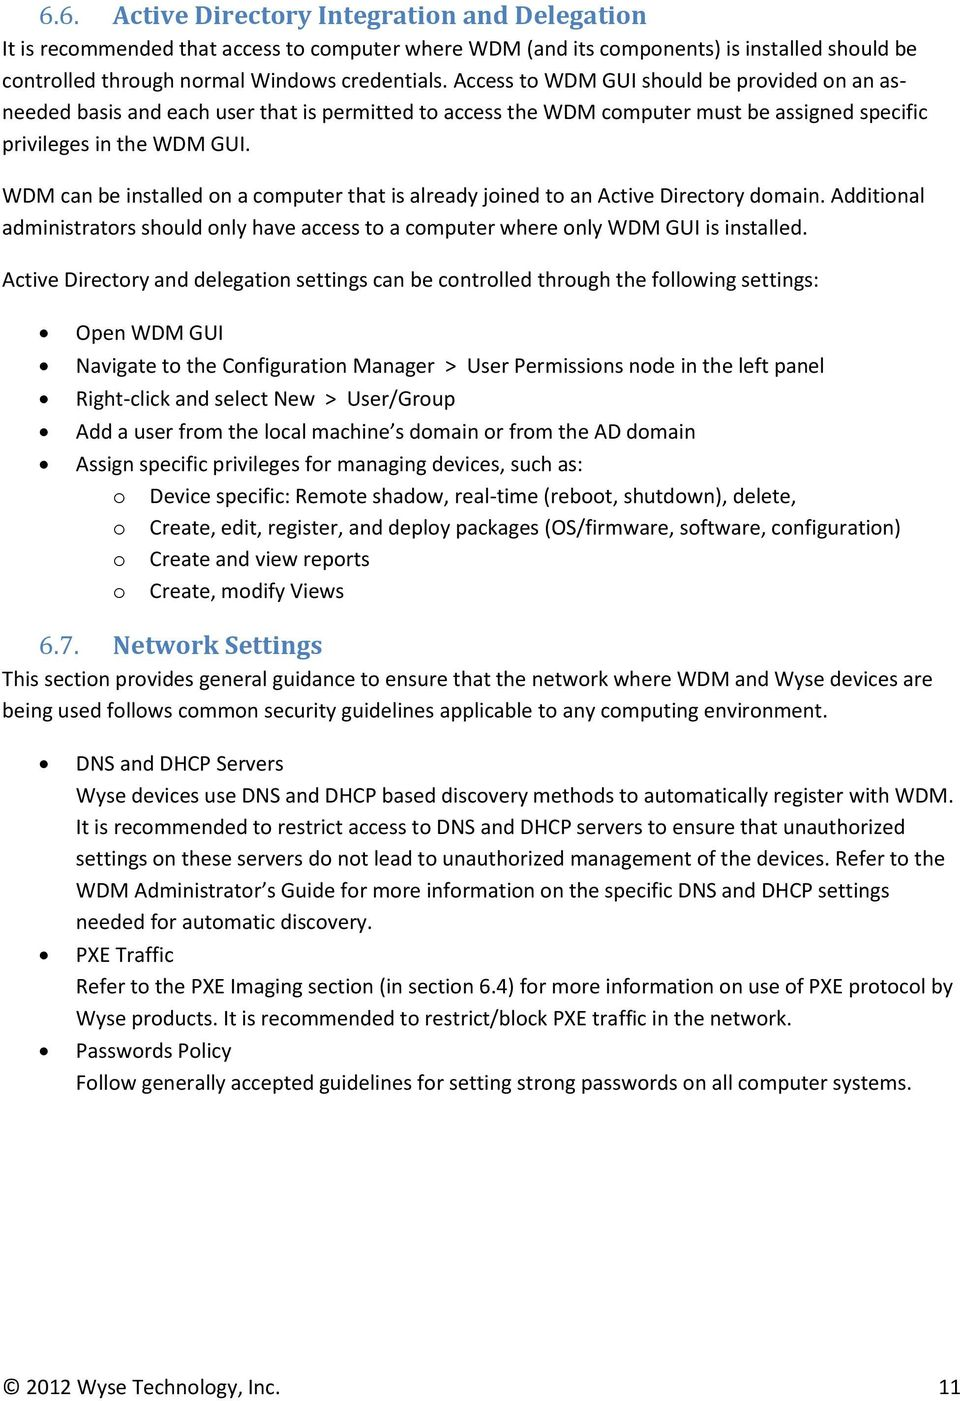 WDM can be installed on a computer that is already joined to an Active Directory domain. Additional administrators should only have access to a computer where only WDM GUI is installed.